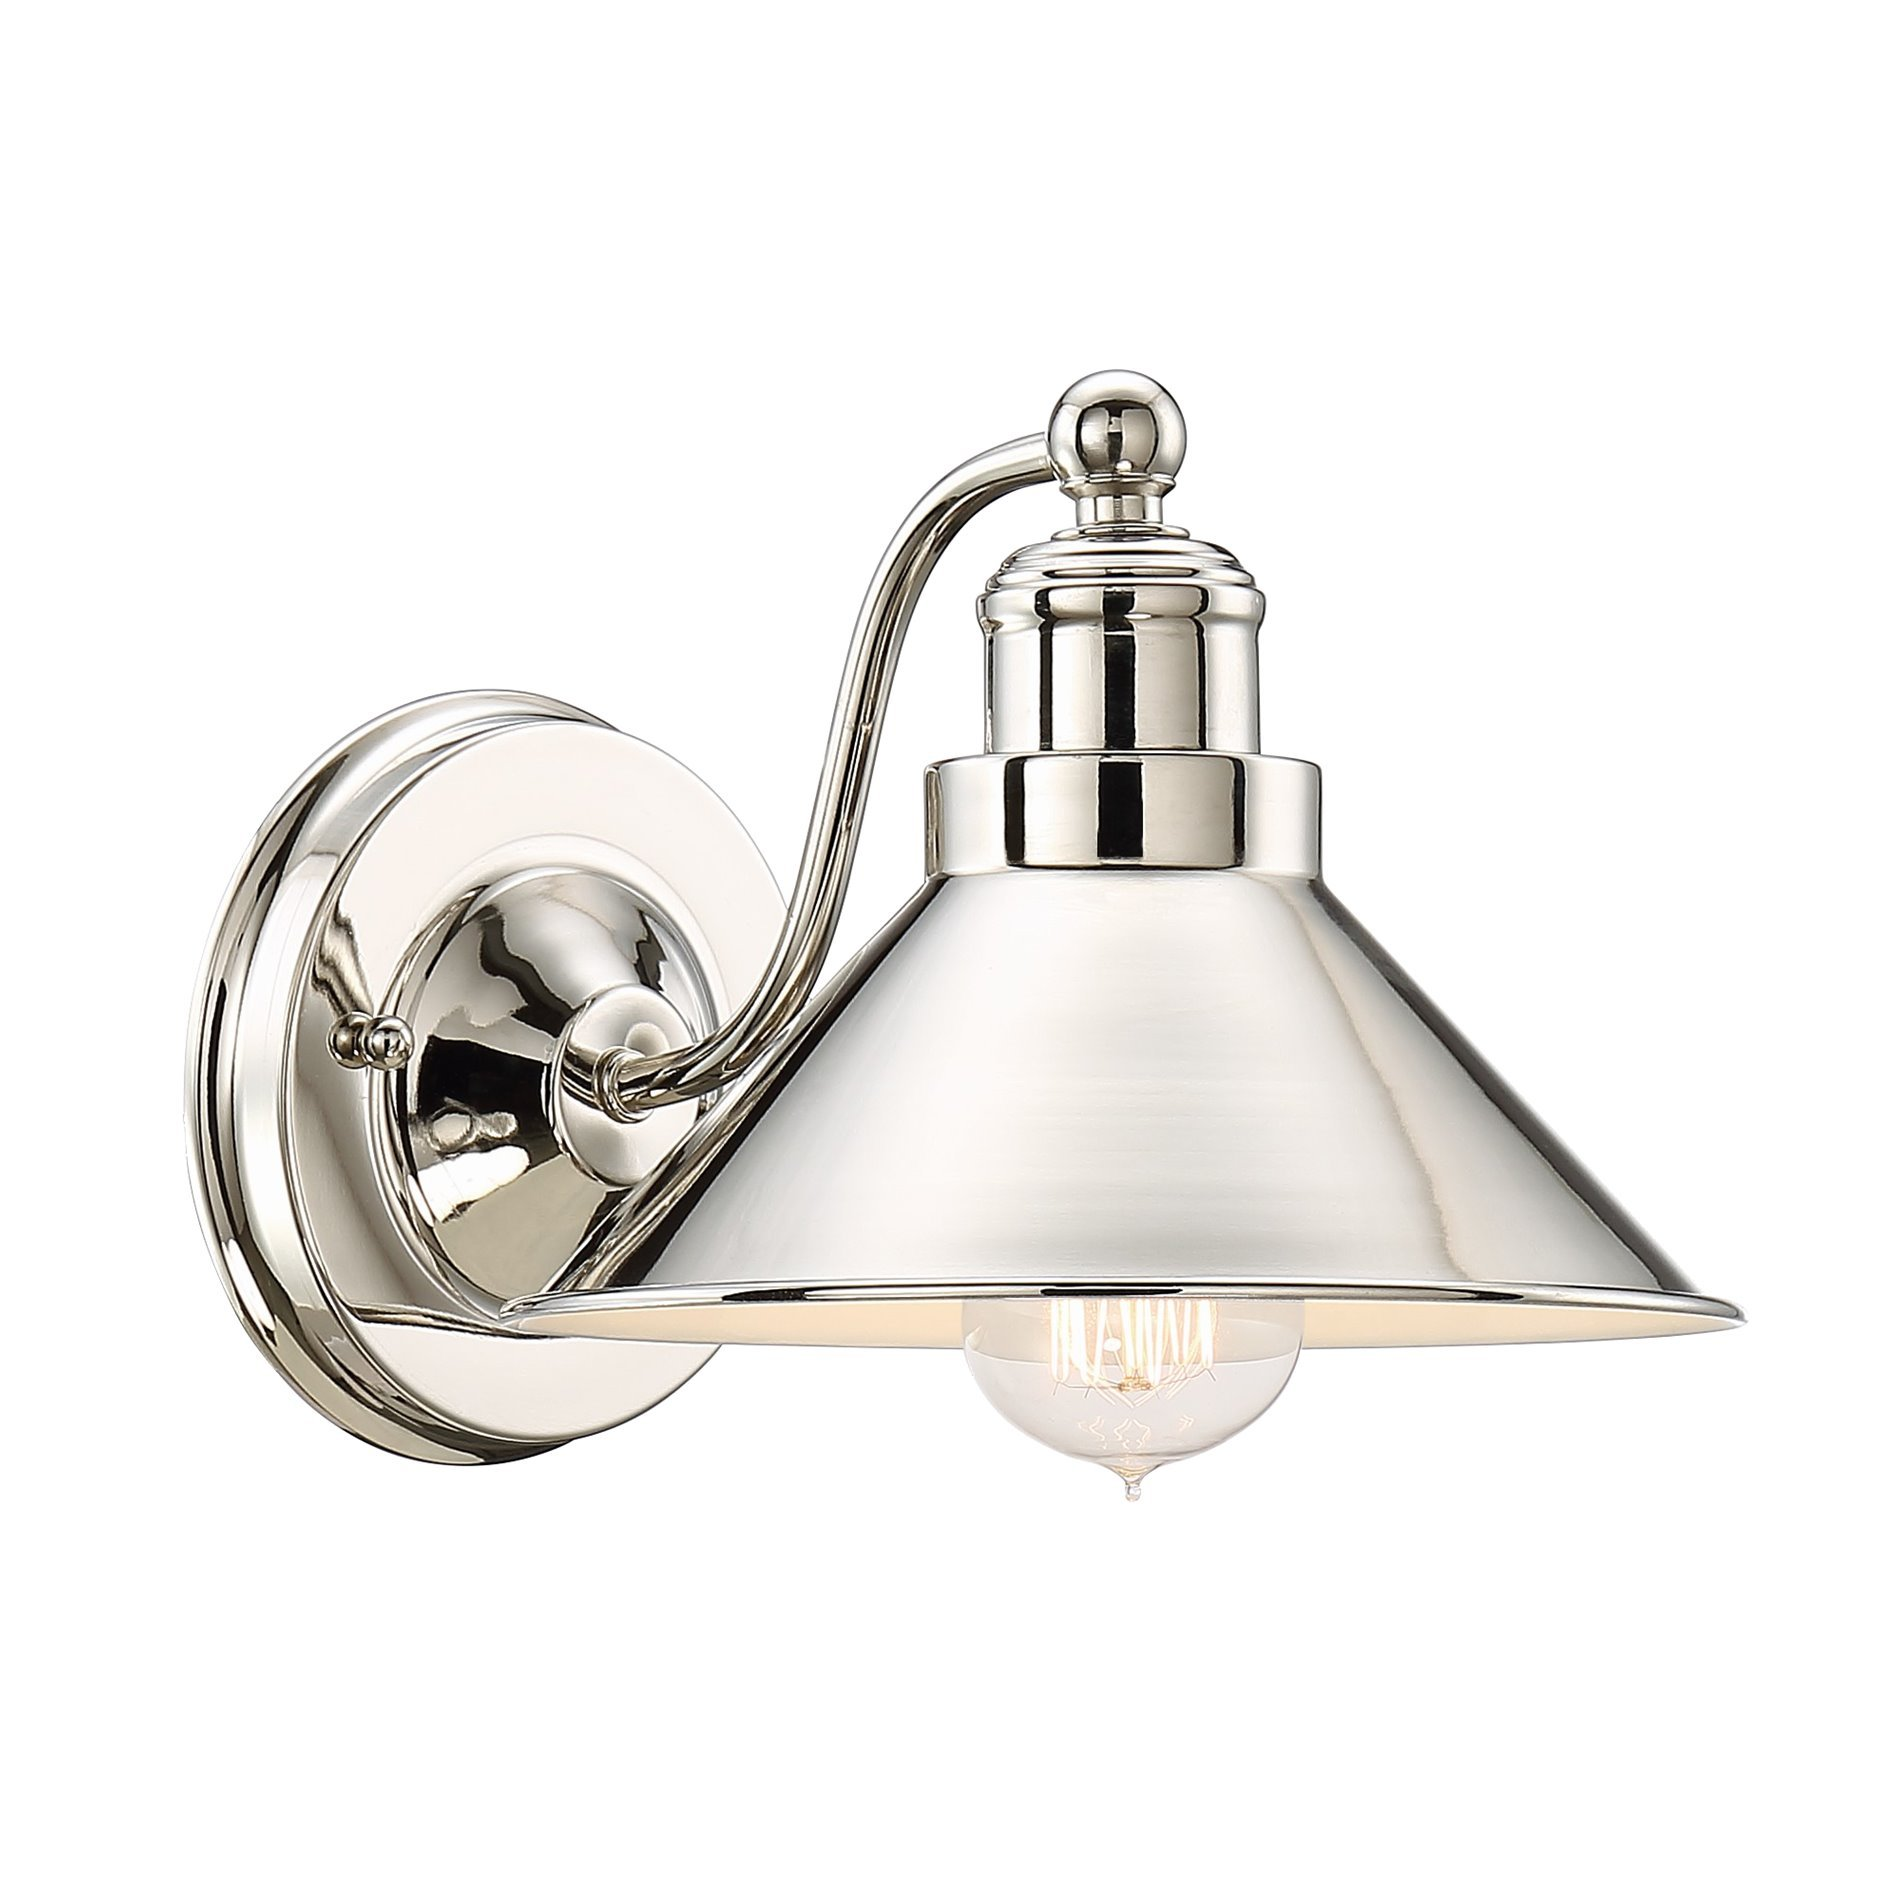 Kira Home Welton 8.5'' Modern Industrial Wall Sconce, Polished Nickel Finish